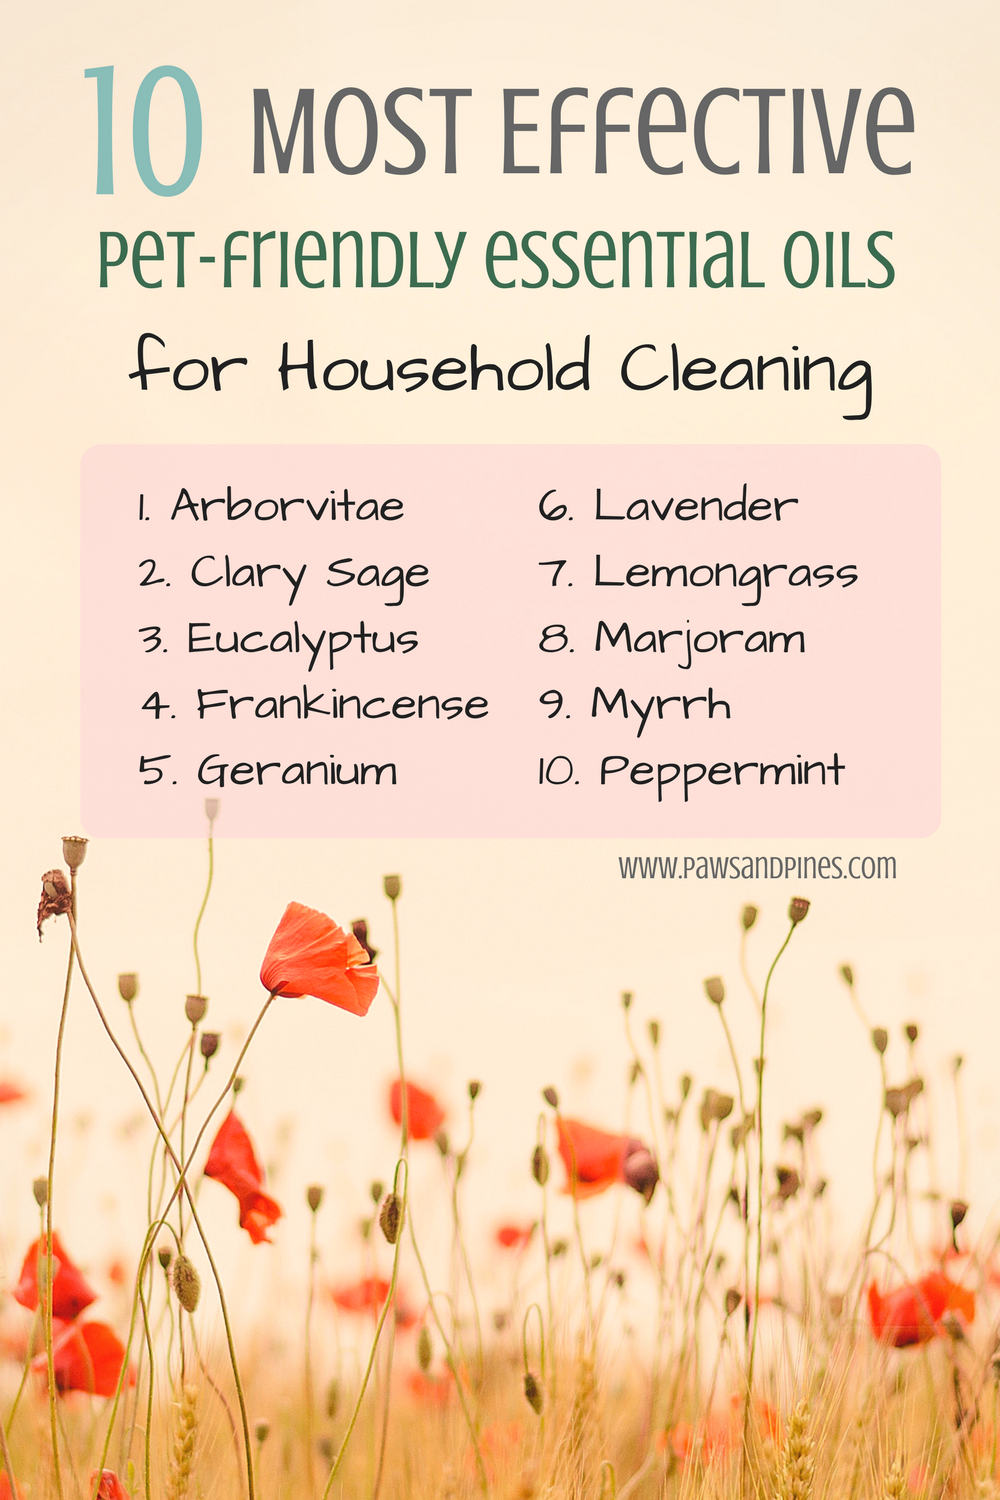 10 Most Effective Pet-Friendly Essential Oils for Household Cleaning